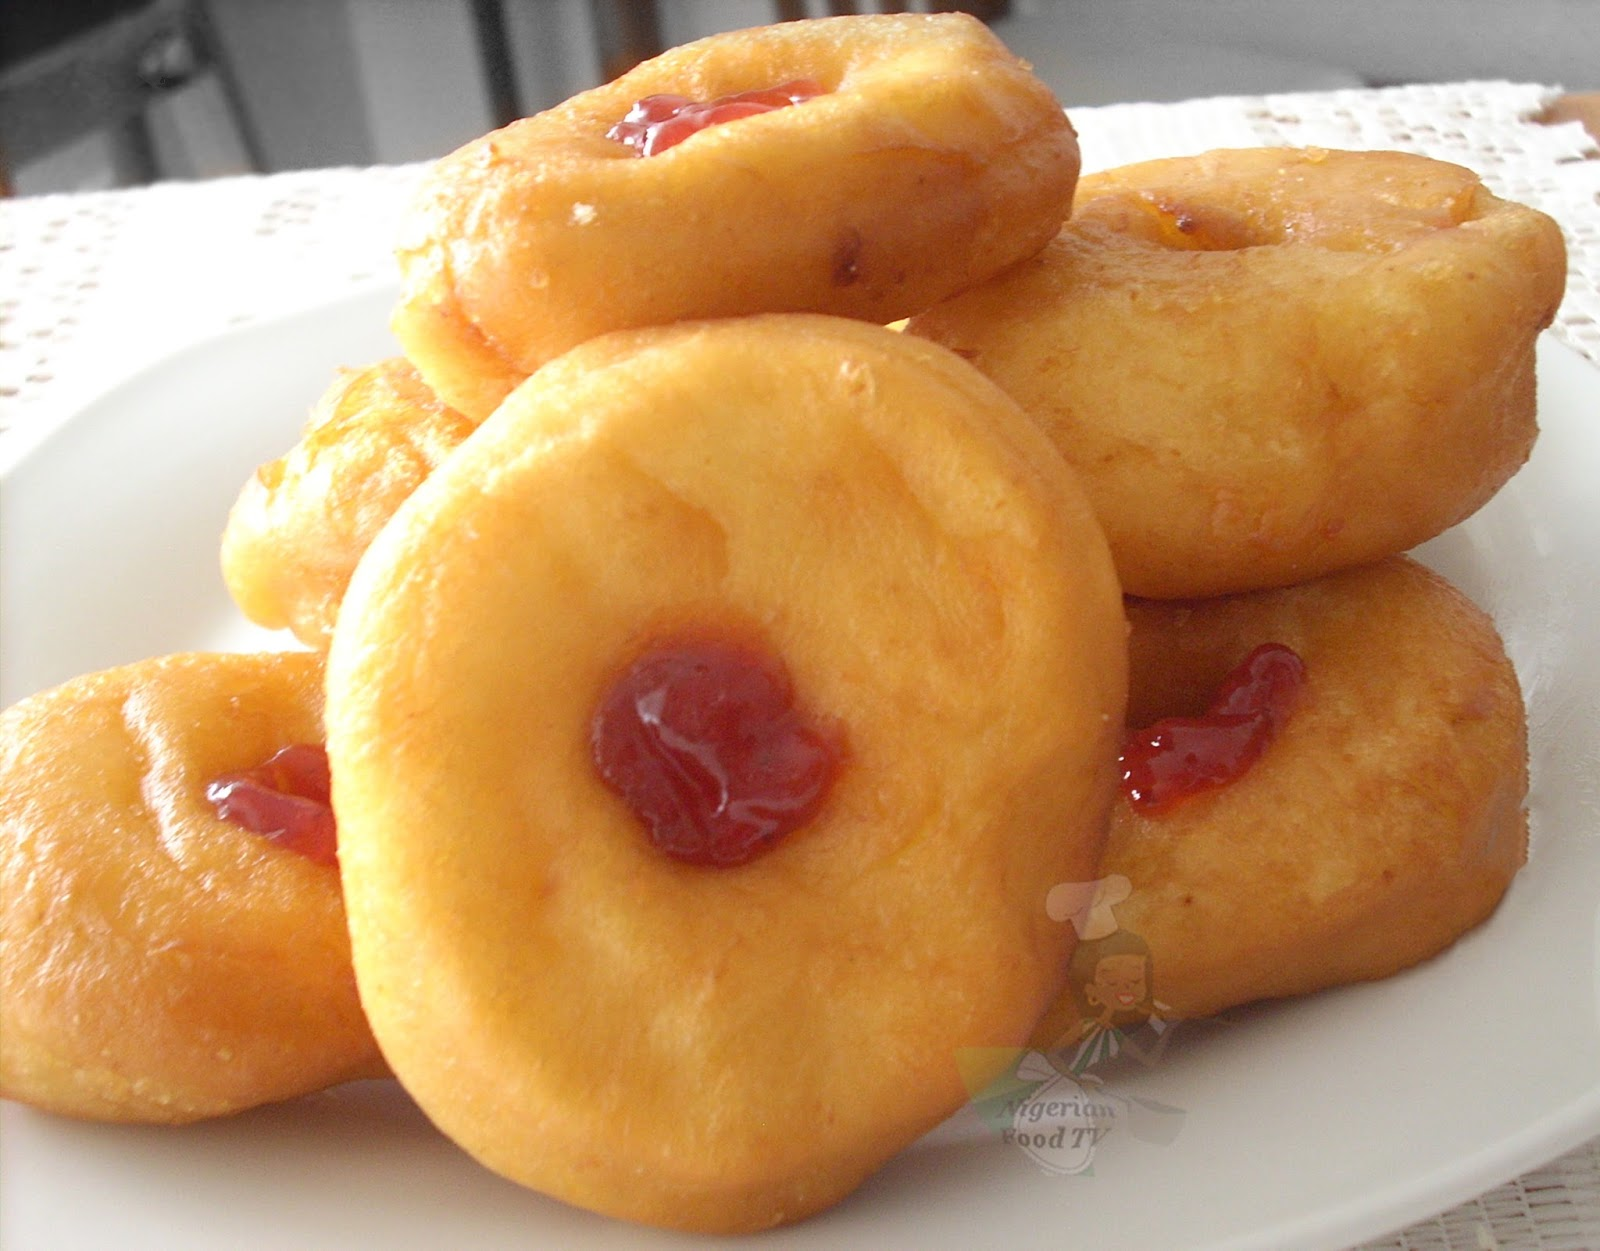 How to make nigerian donuts nigerian doughnuts filled with jam how to make nigerian donuts nigerian donuts nigerian doughnuts nigerian food tv forumfinder Choice Image